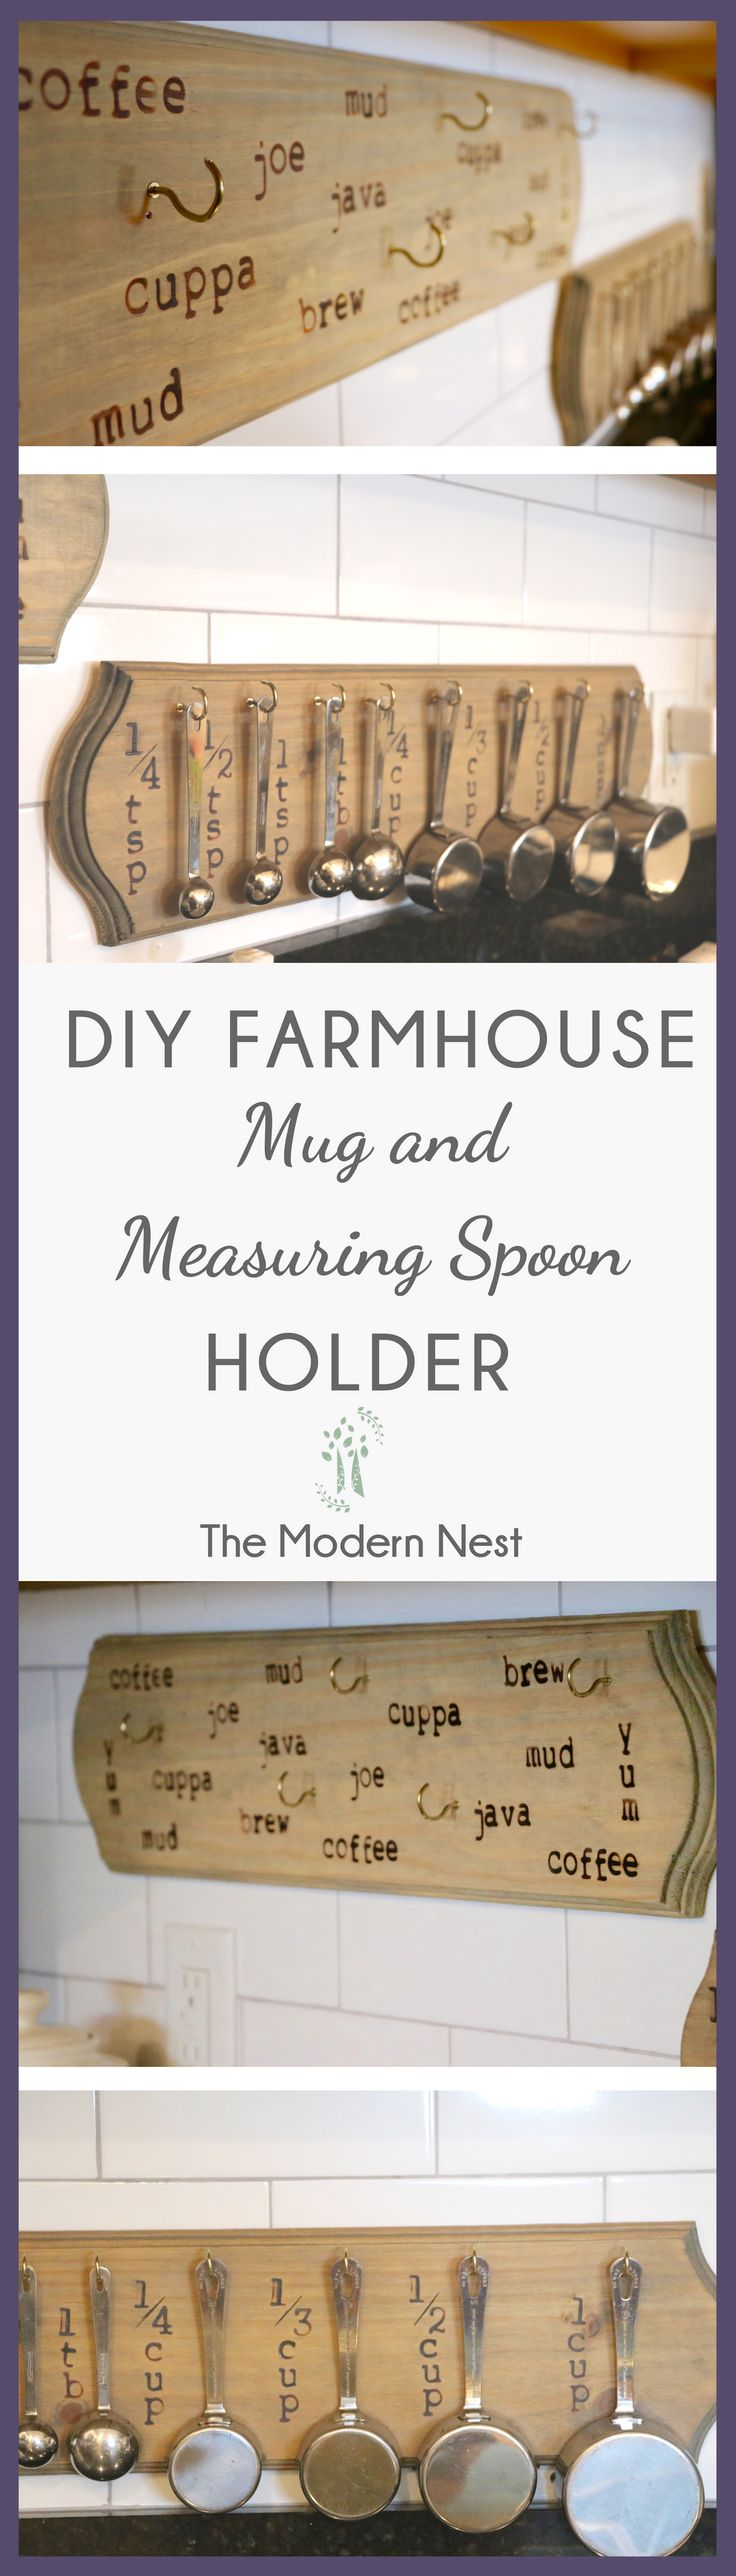 Fun and easy DIY farmhouse mug holder or measuring spoon holder! Check out https://www.themodernnestblog.com/?p=70 for the full DIY tutorial!